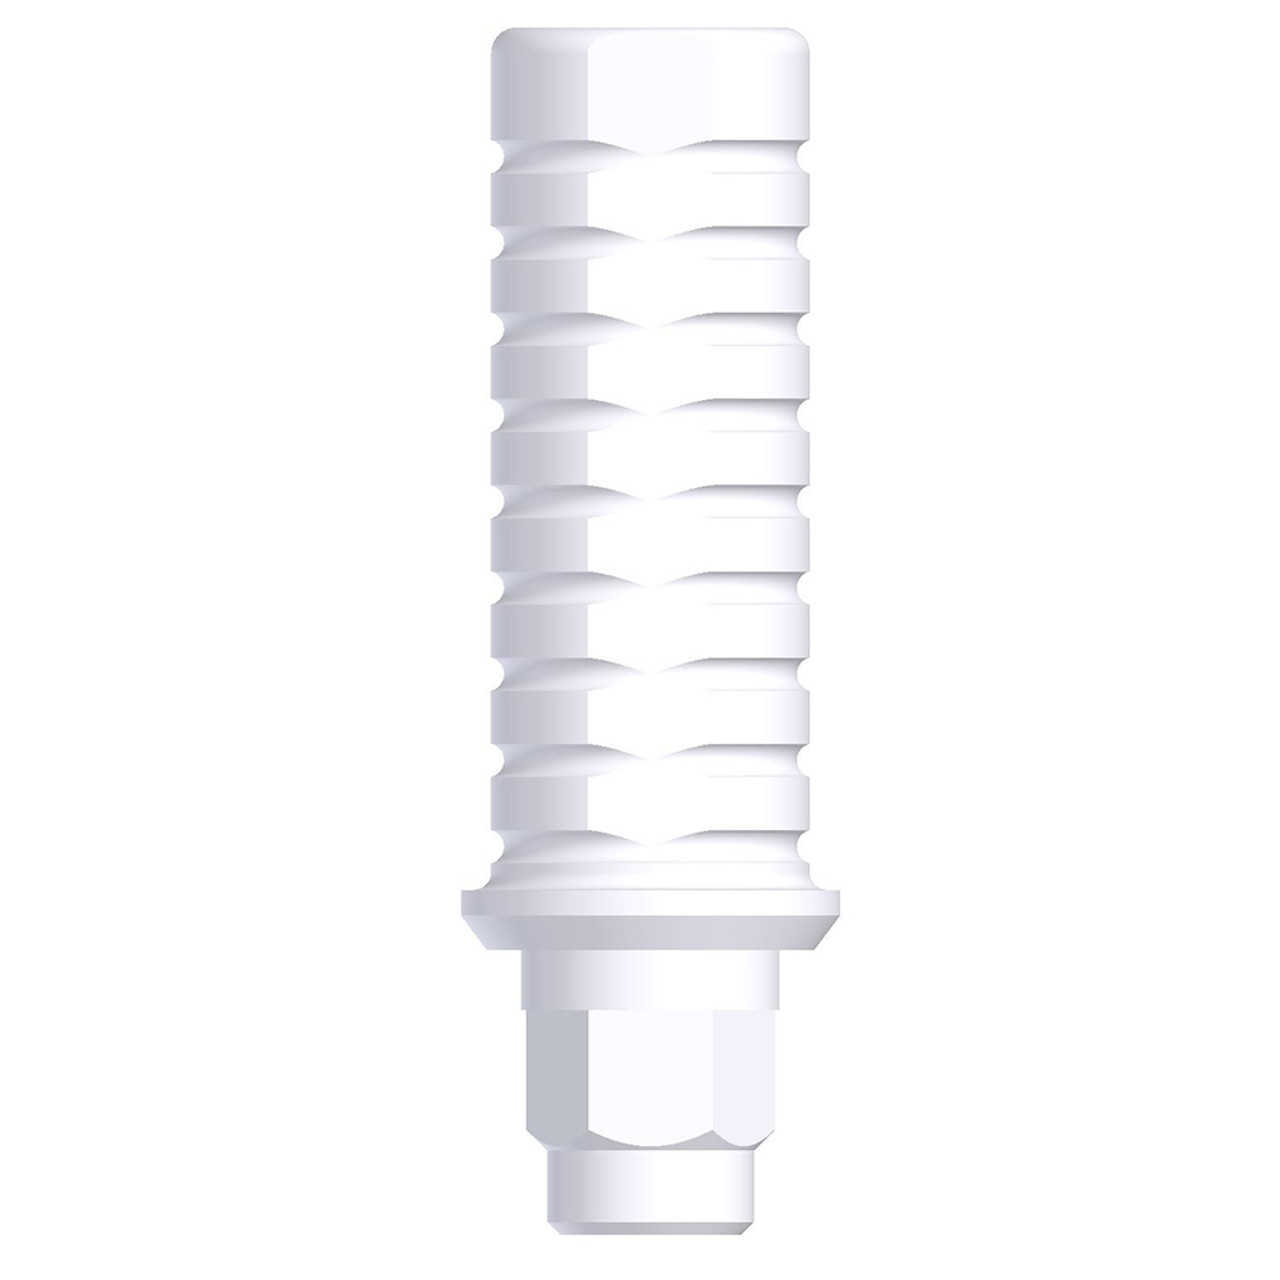 All-Plastic Castable Abutment (Xive Compatible)